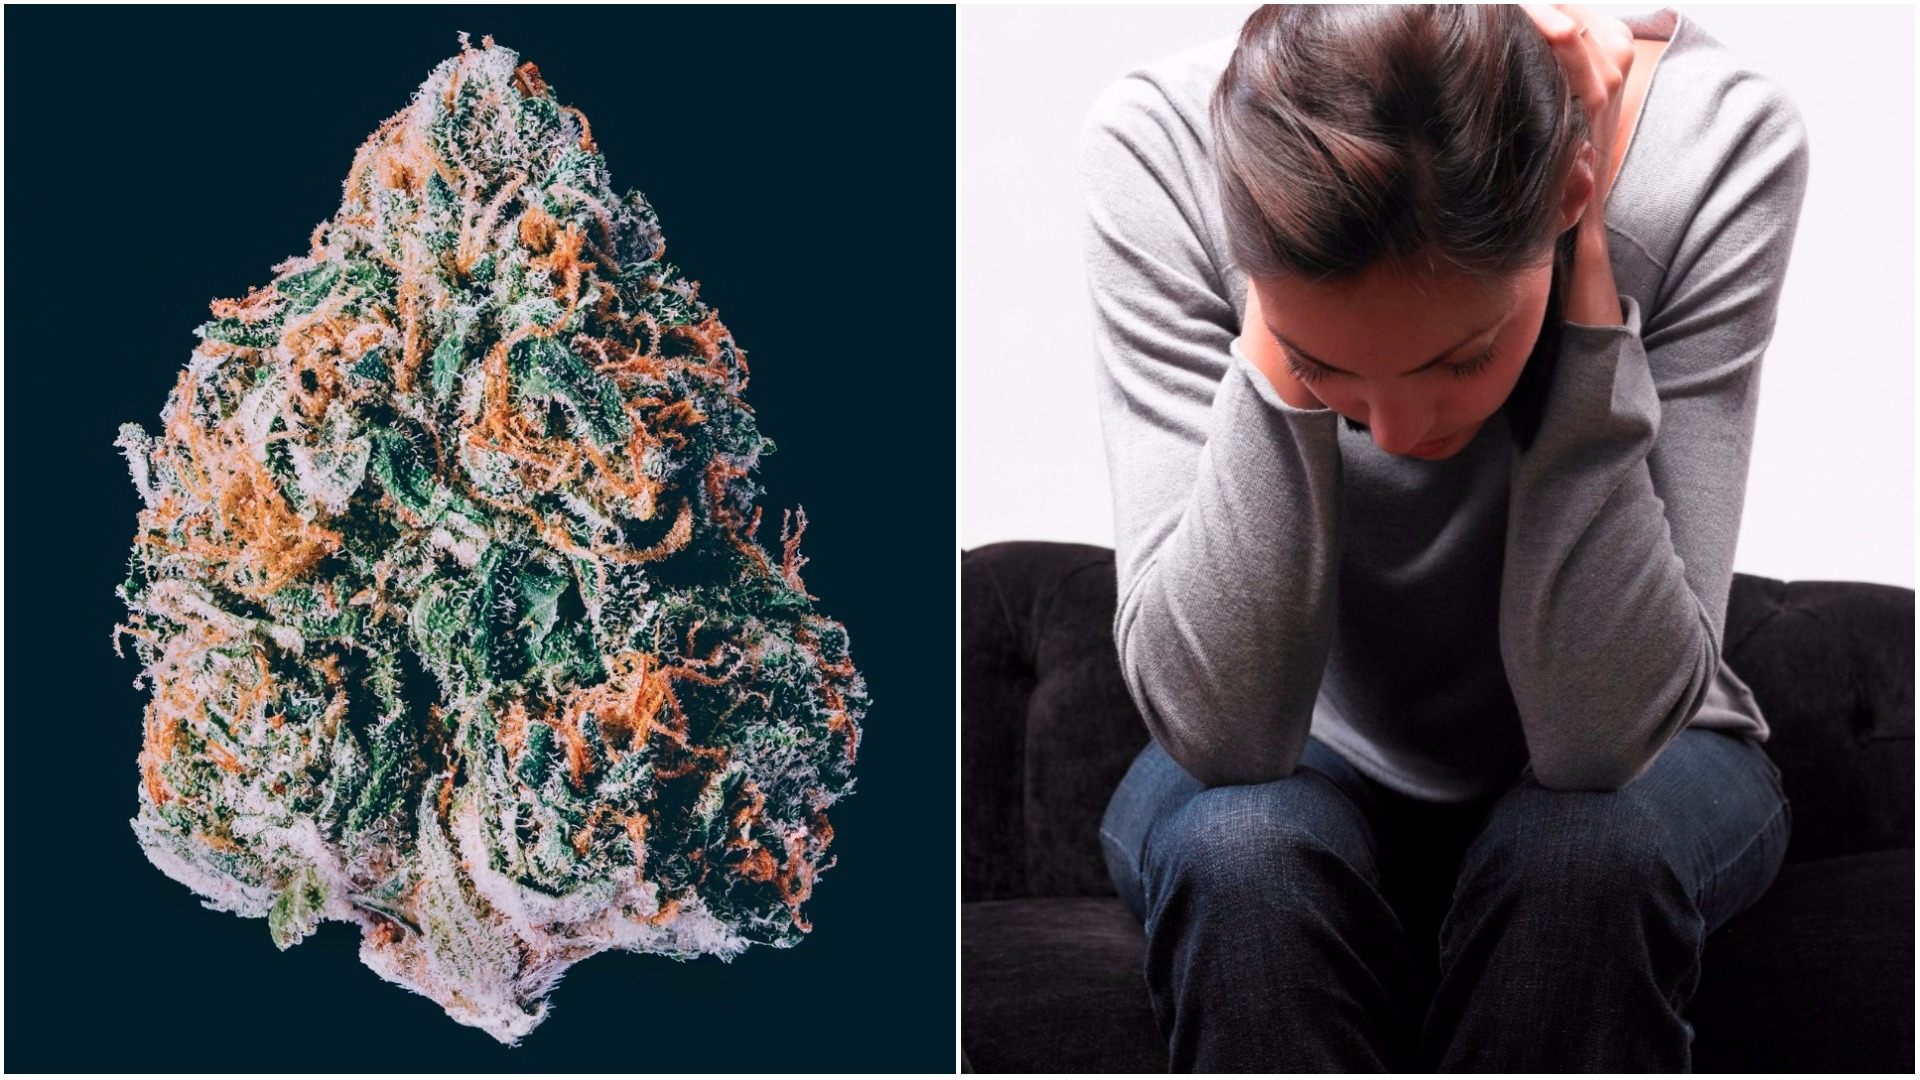 This Is Why Weed Makes Some People Anxious - VICE